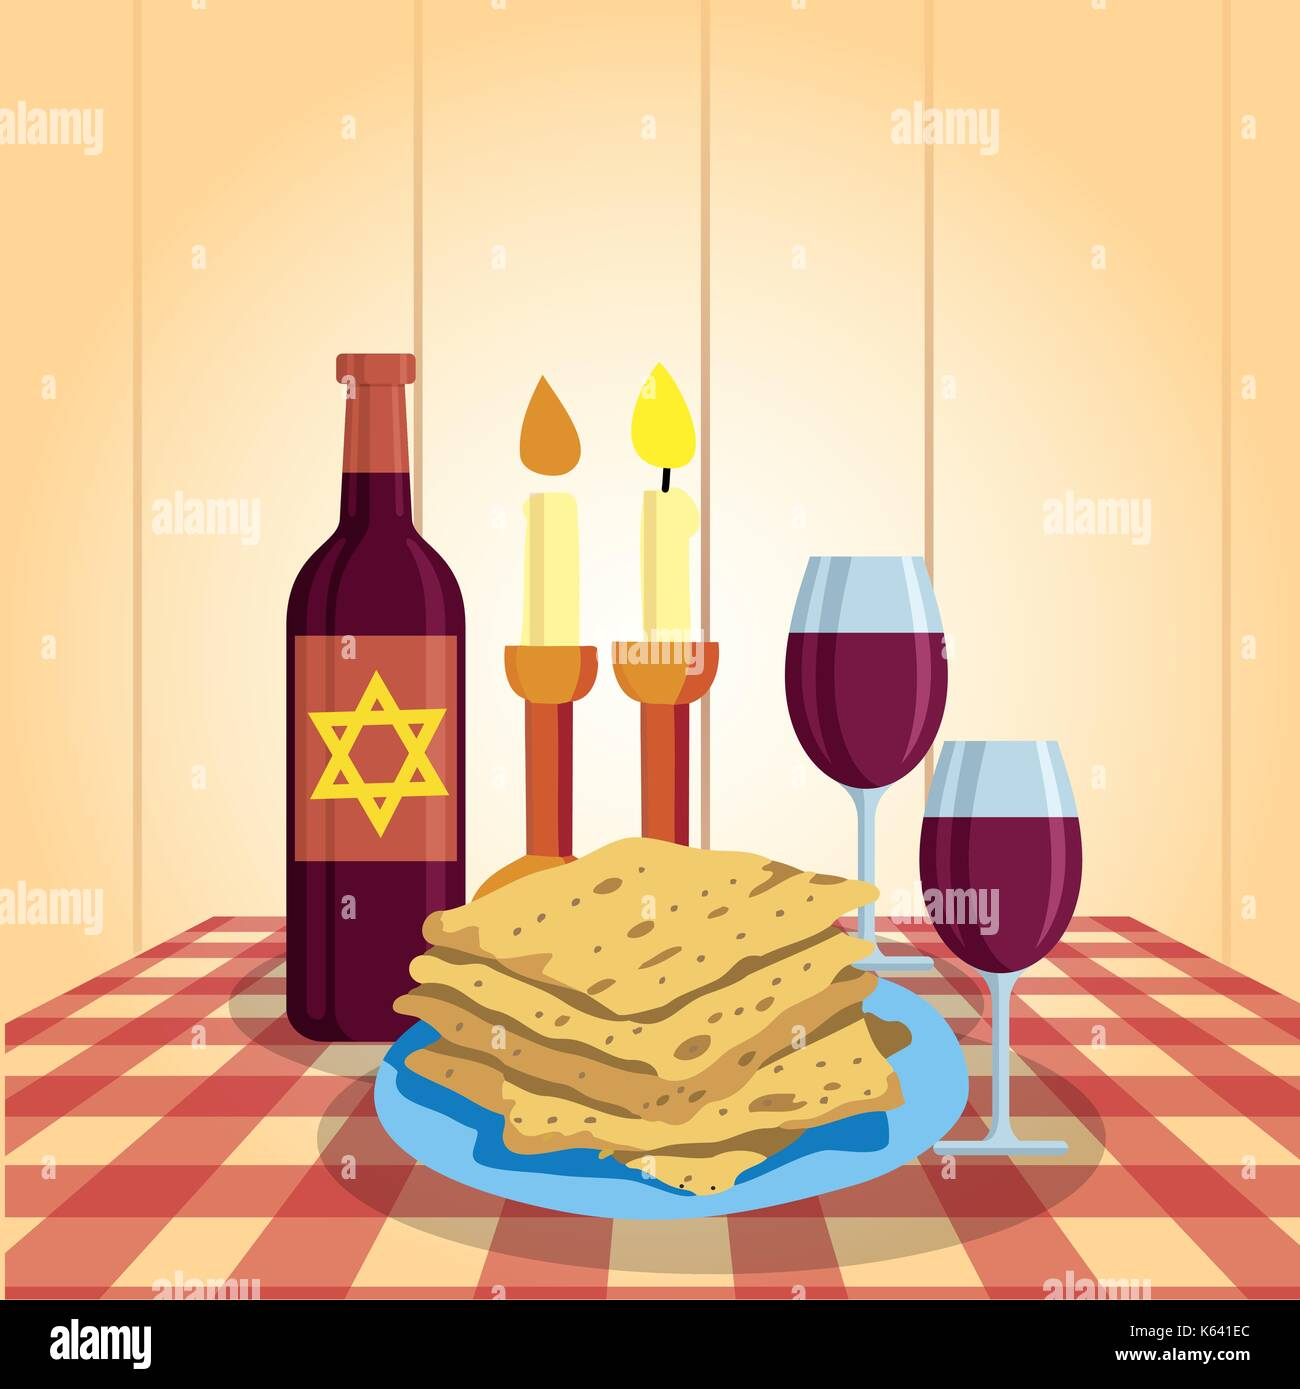 Shabbat shalom. Candles, kiddush cup and matzo. Religious traditions. - Stock Image